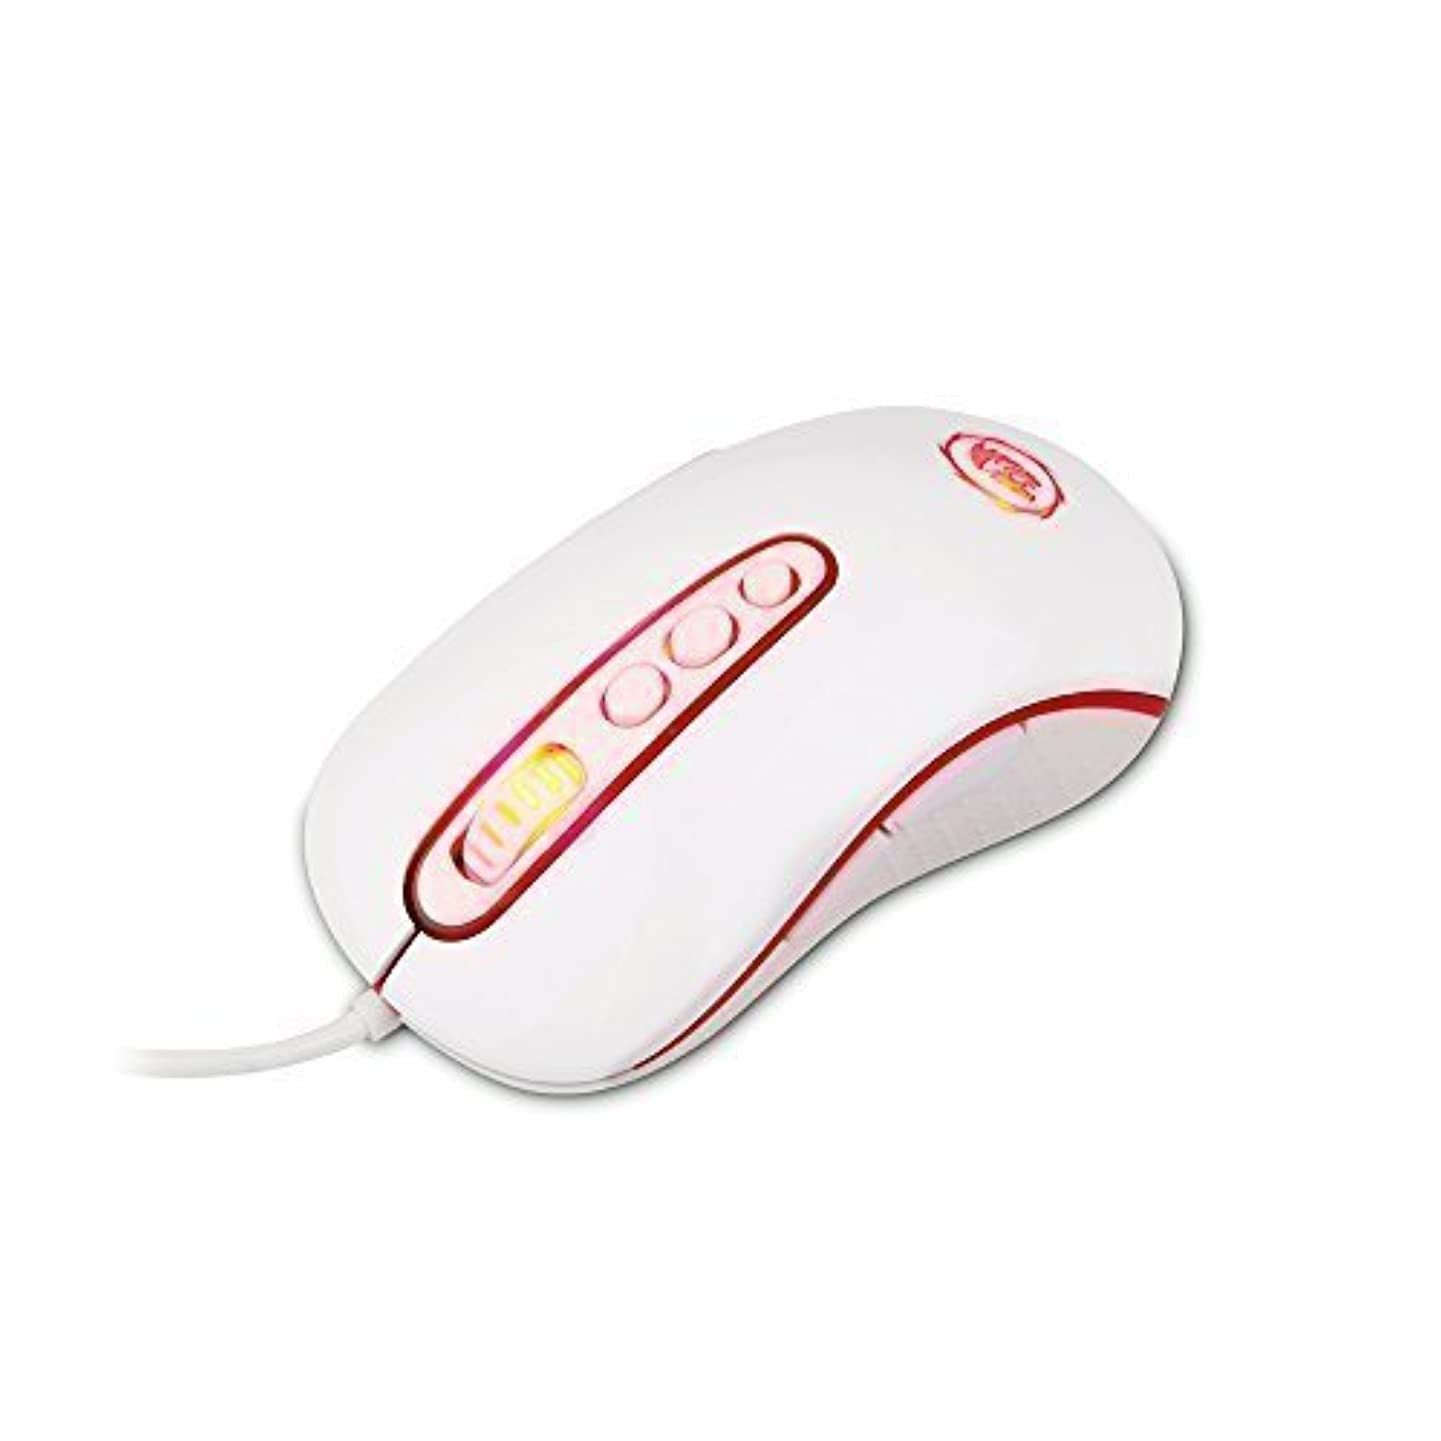 Redragon M702 Phoenix 4000 DPI USB Customizable Gaming Mouse for PC, 10 Buttons, 5 Programmable User Modes, Weight and Balance Tunable, LED Backlighting (White)